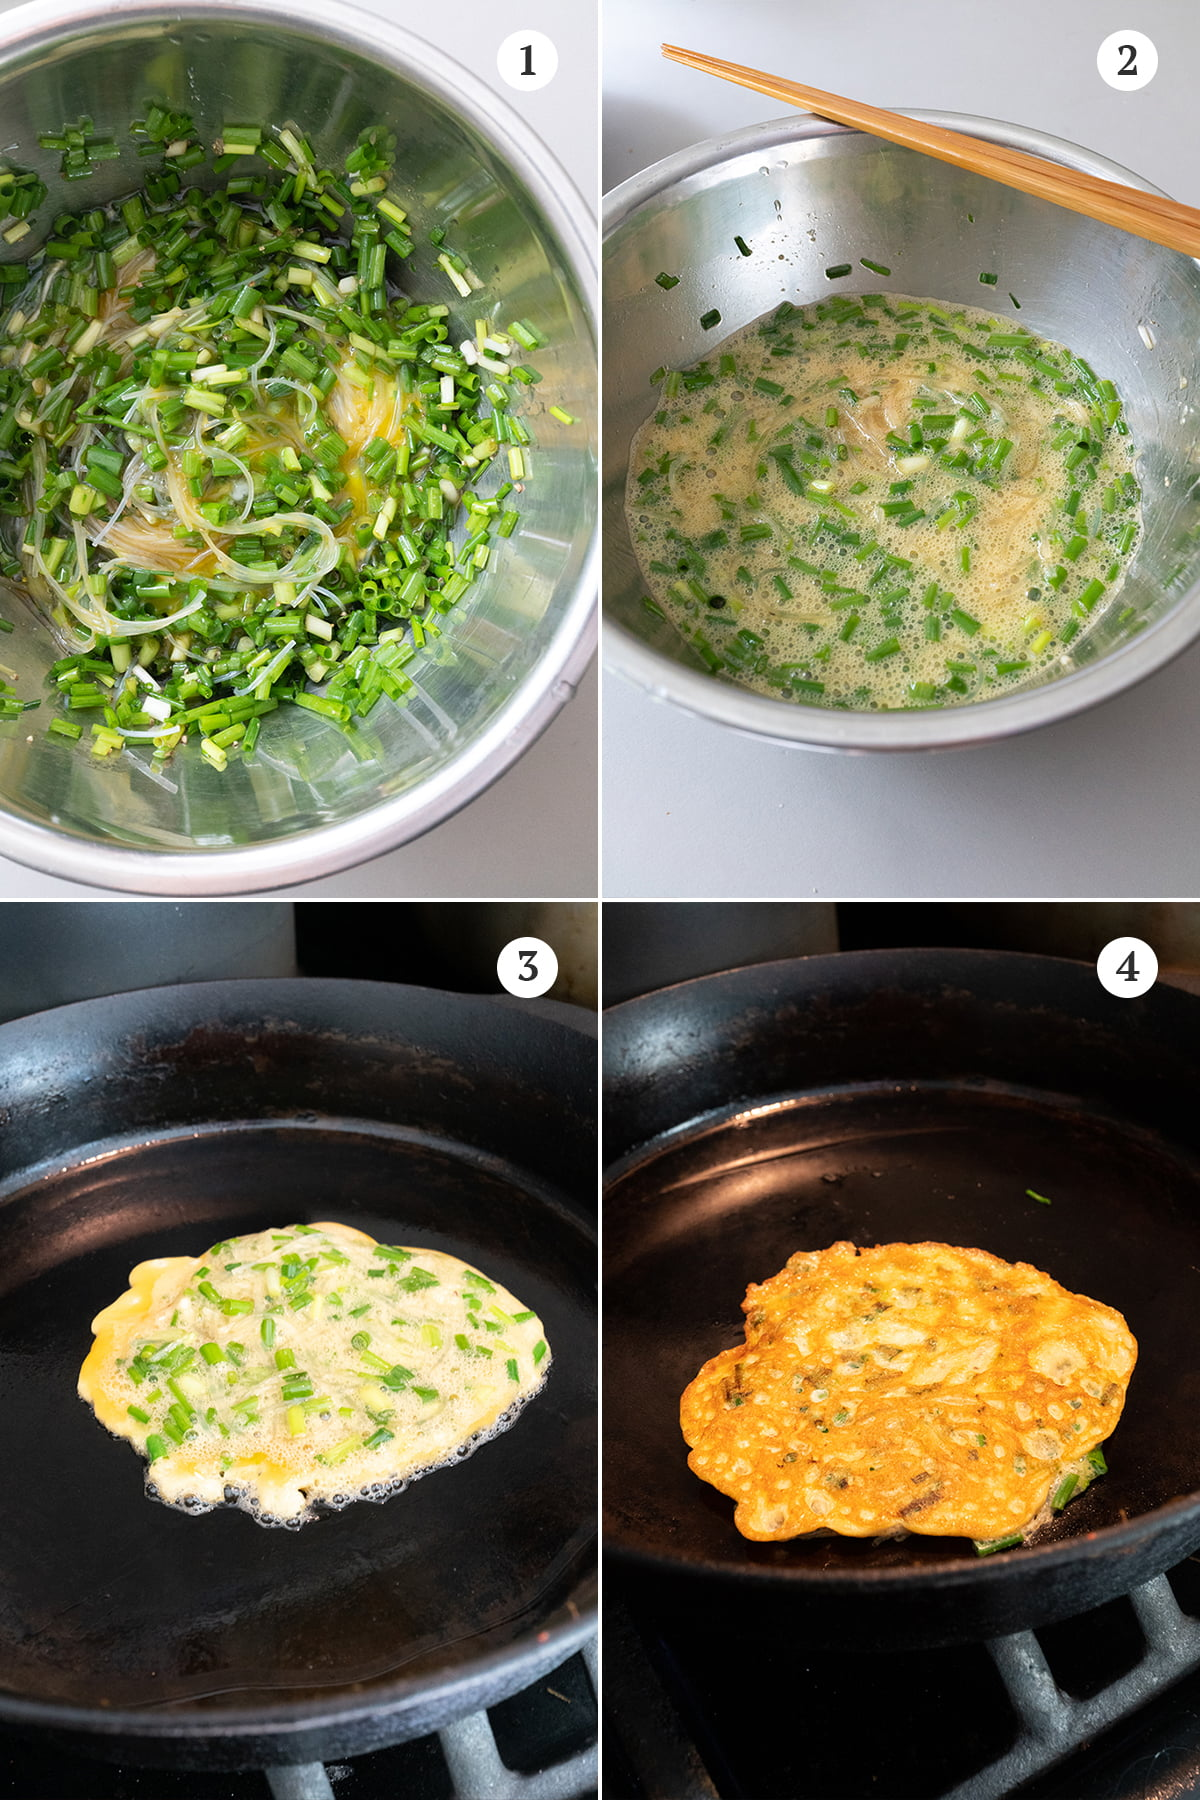 Collage of cooking process: 1) add eggs, chives, and vermicelli to the bowl and mix well, 2) season and mix, 3) pan fry one side till golden, 4) pan fry the other side.